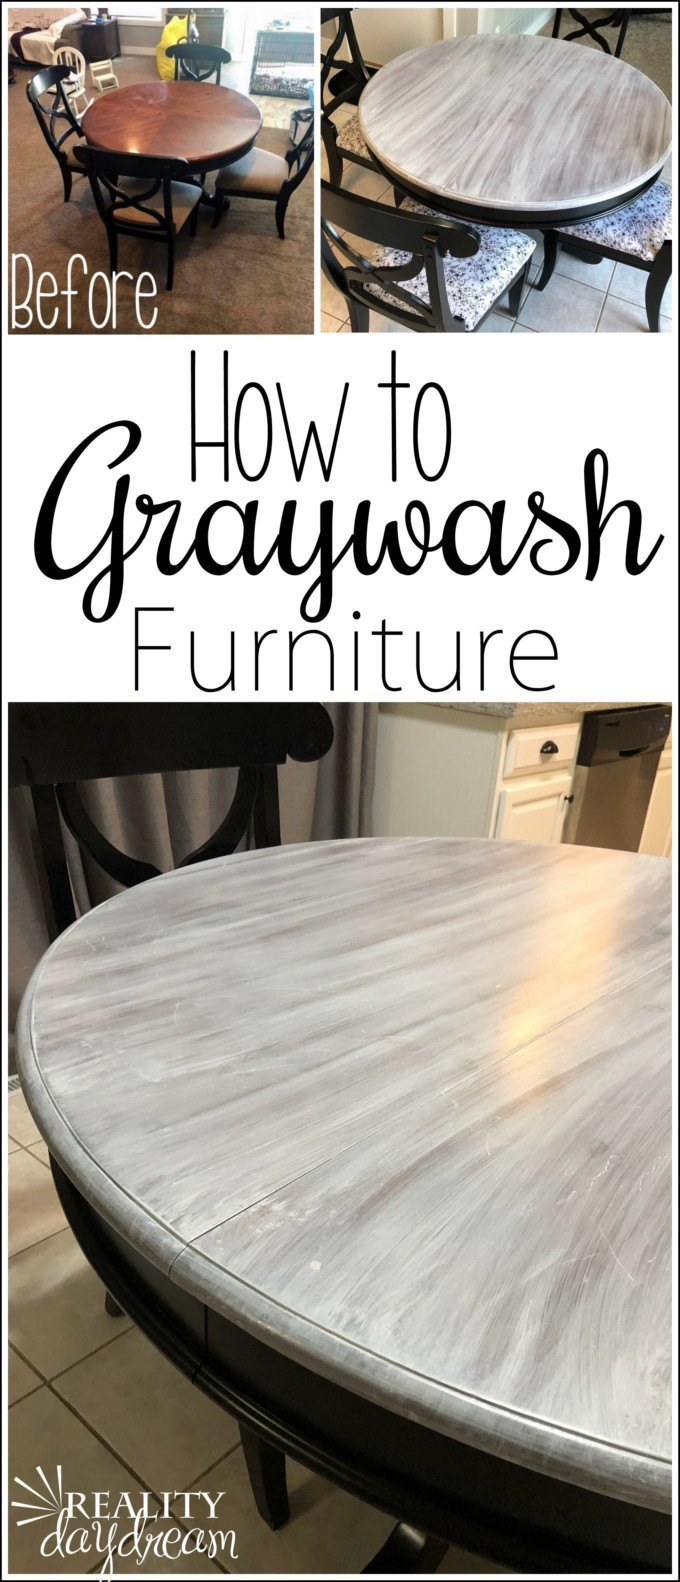 How to graywash or whitewash furniture to get that farmhouse look! #shabby #whitewash #graywash #farmhousedecor {Reality Daydream}